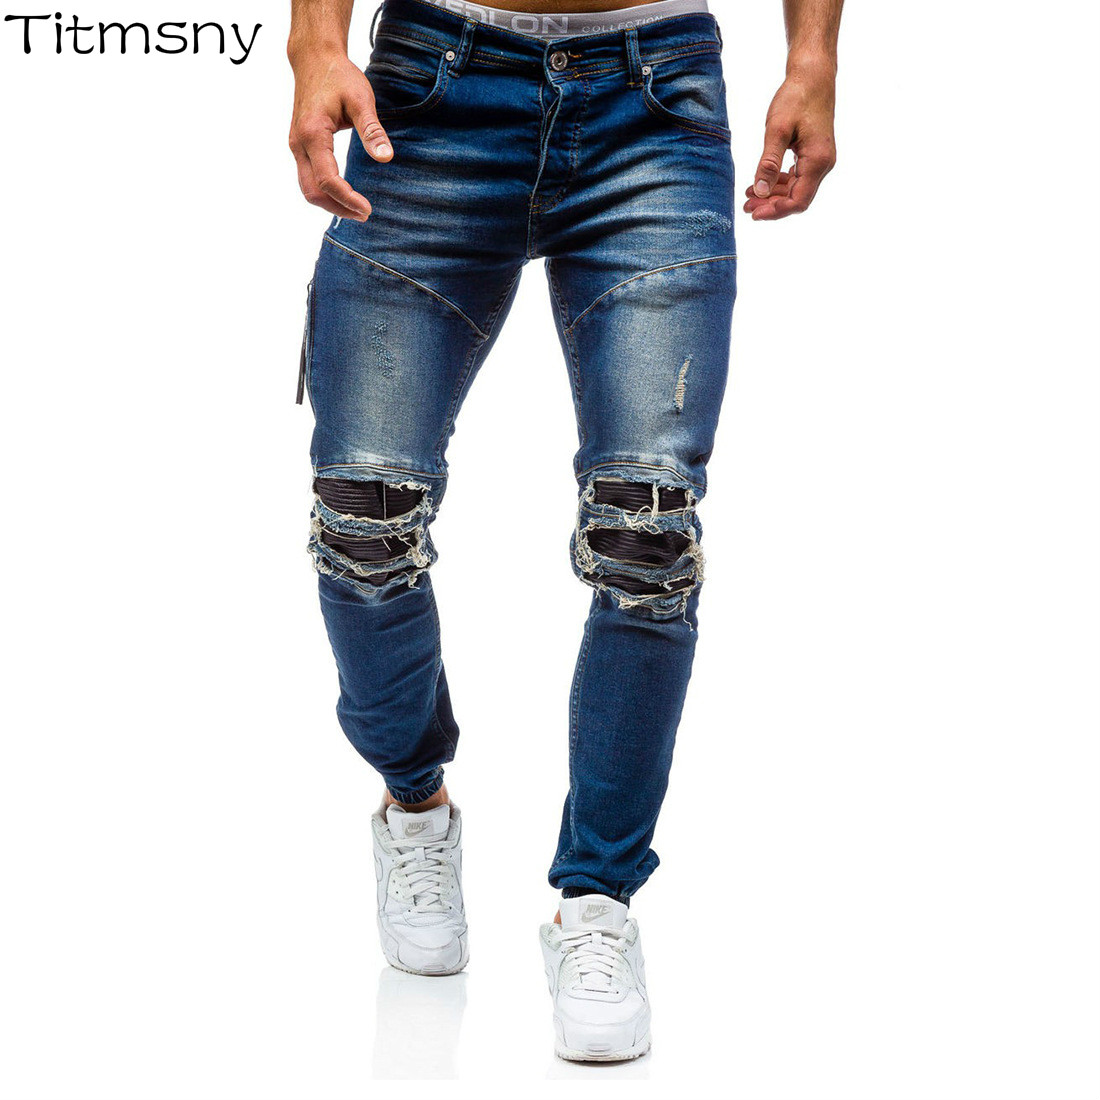 Titmsny Hip Hop Trousers Pencil Pants for Men Solid Fashion Ripped Hole Distressed Jeans Streetwear Skinny Slim Jeans